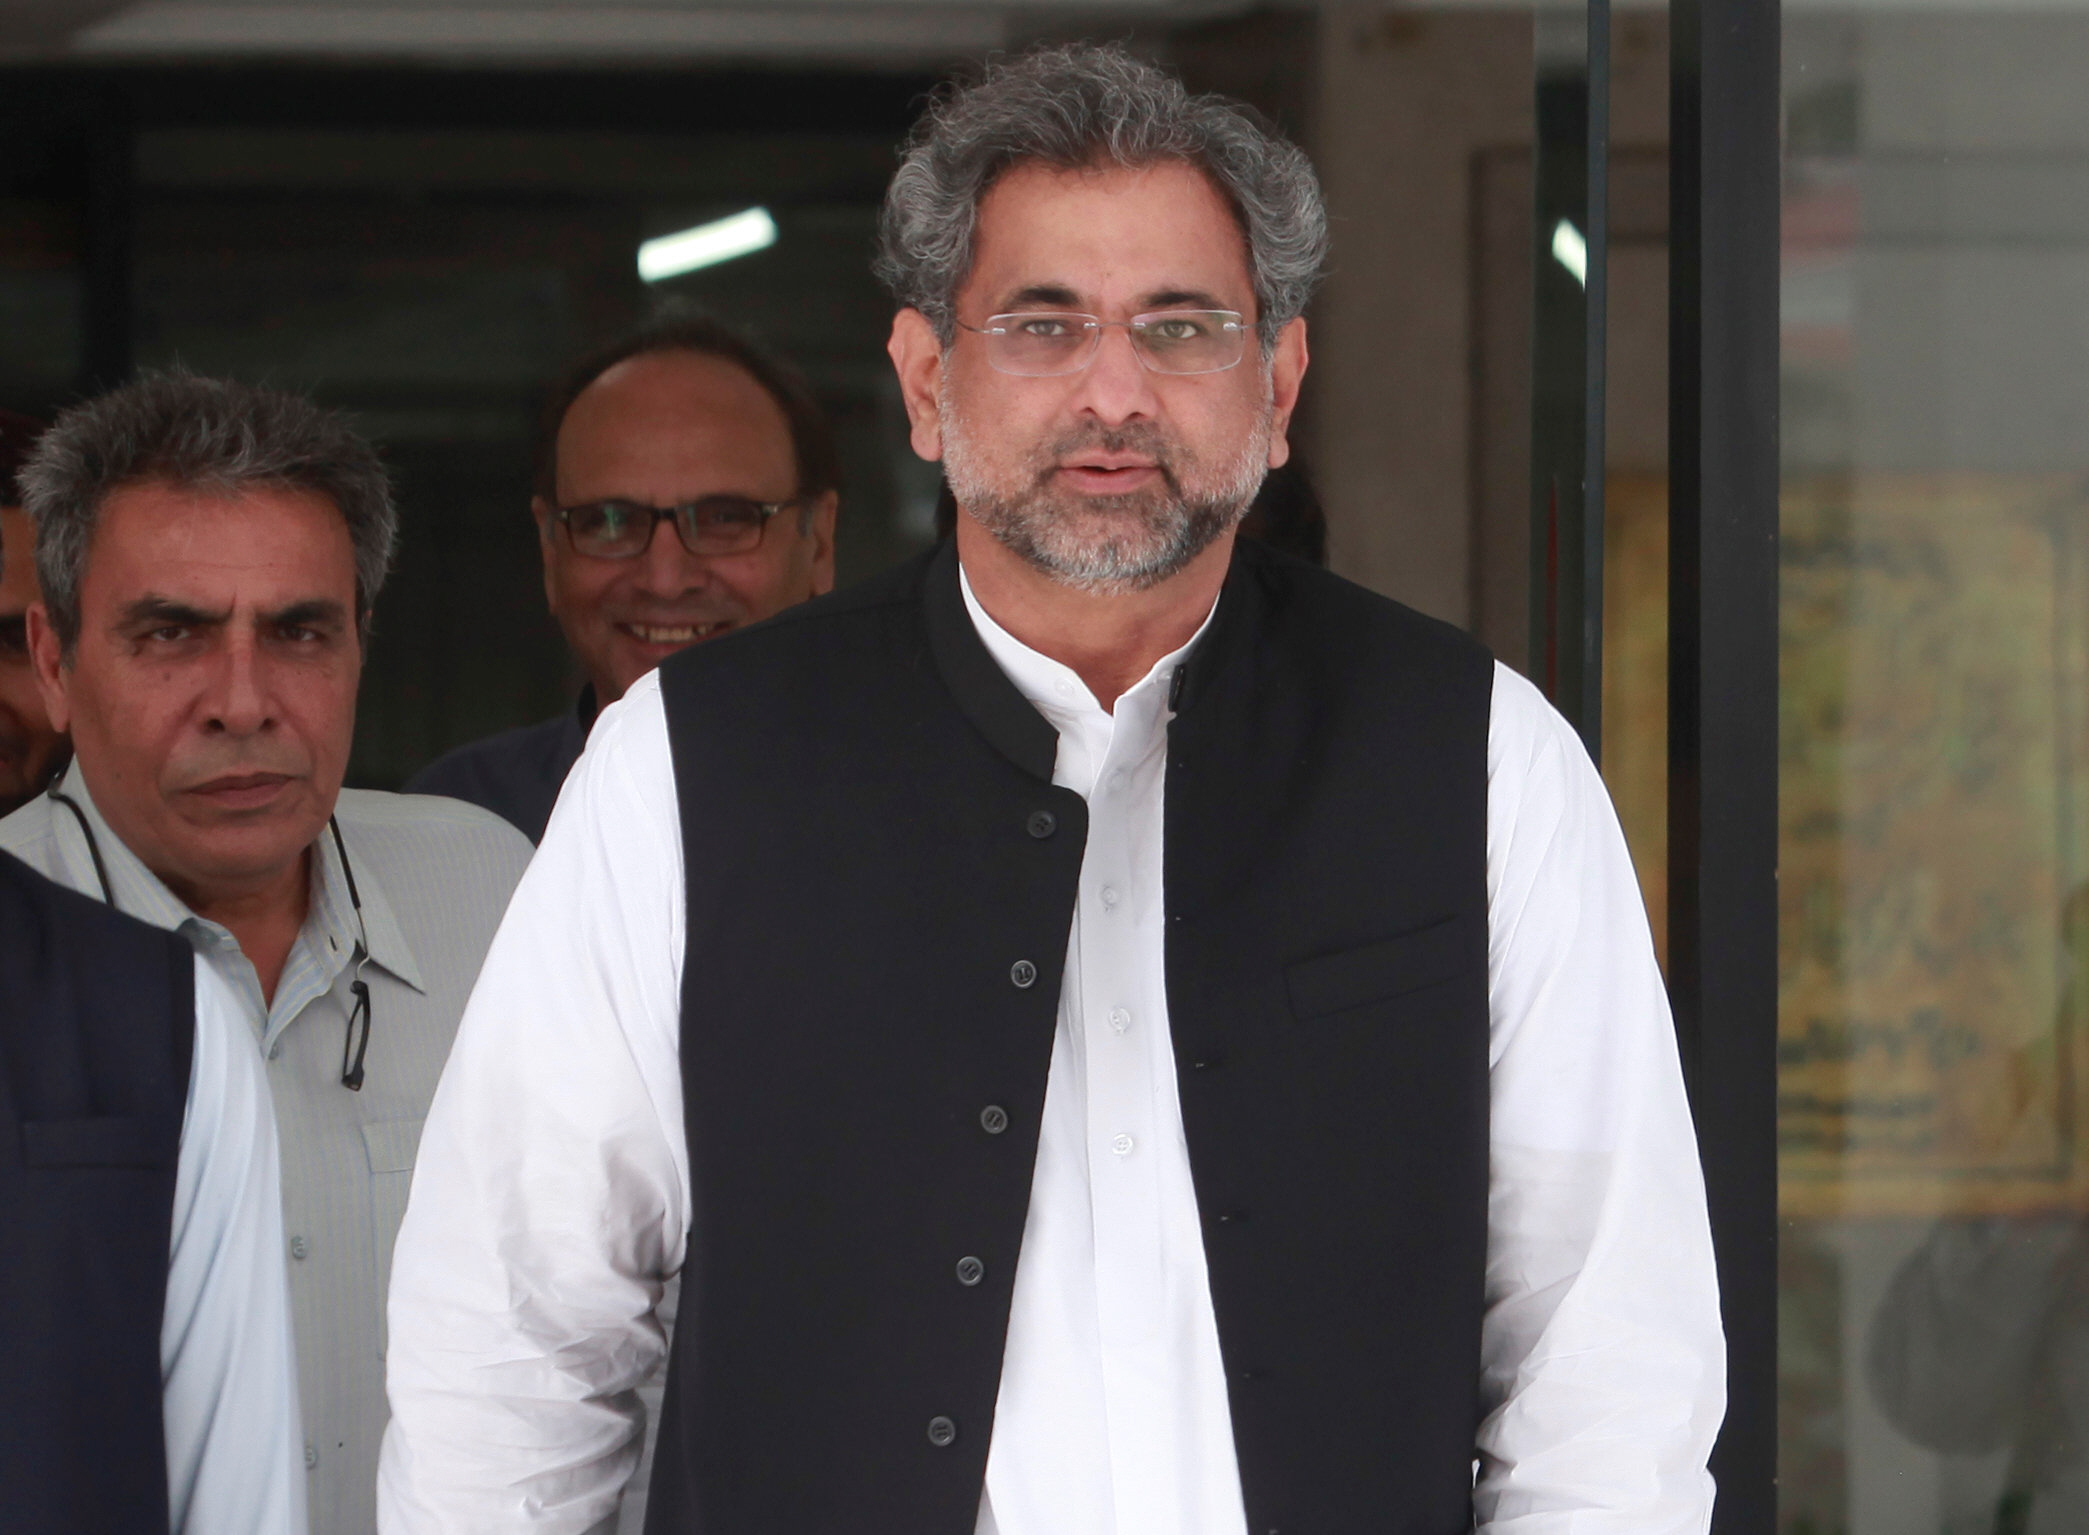 trump s afghan strategy doomed to fail says pm abbasi